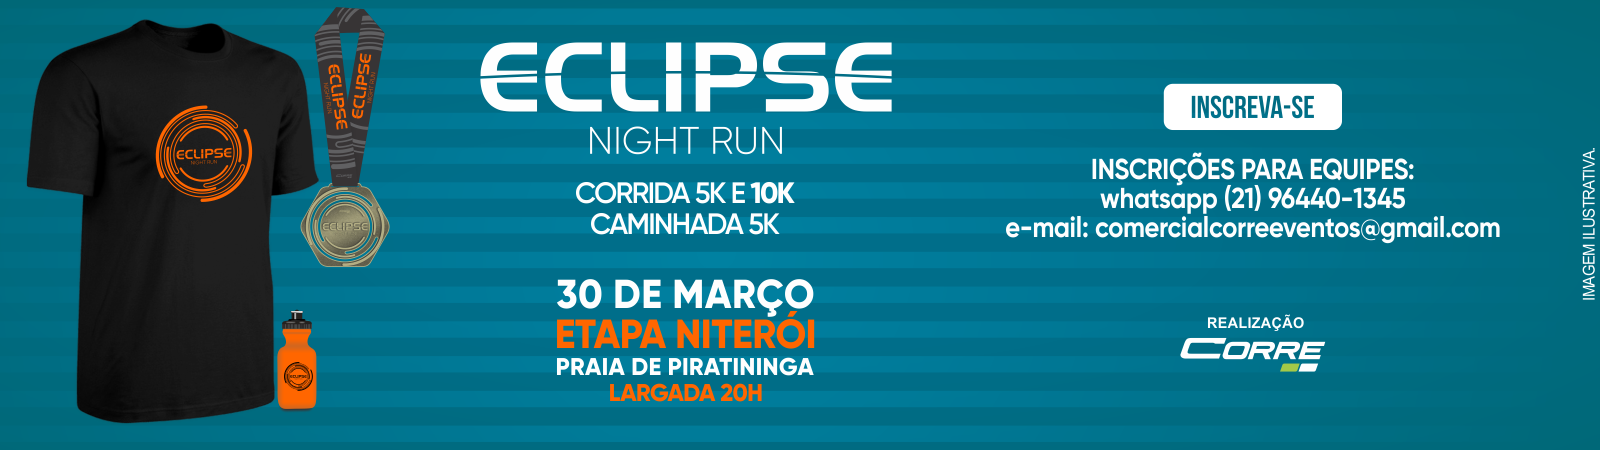 ECLIPSE NIGHT RUN - ETAPA PRAIA DE PIRATININGA